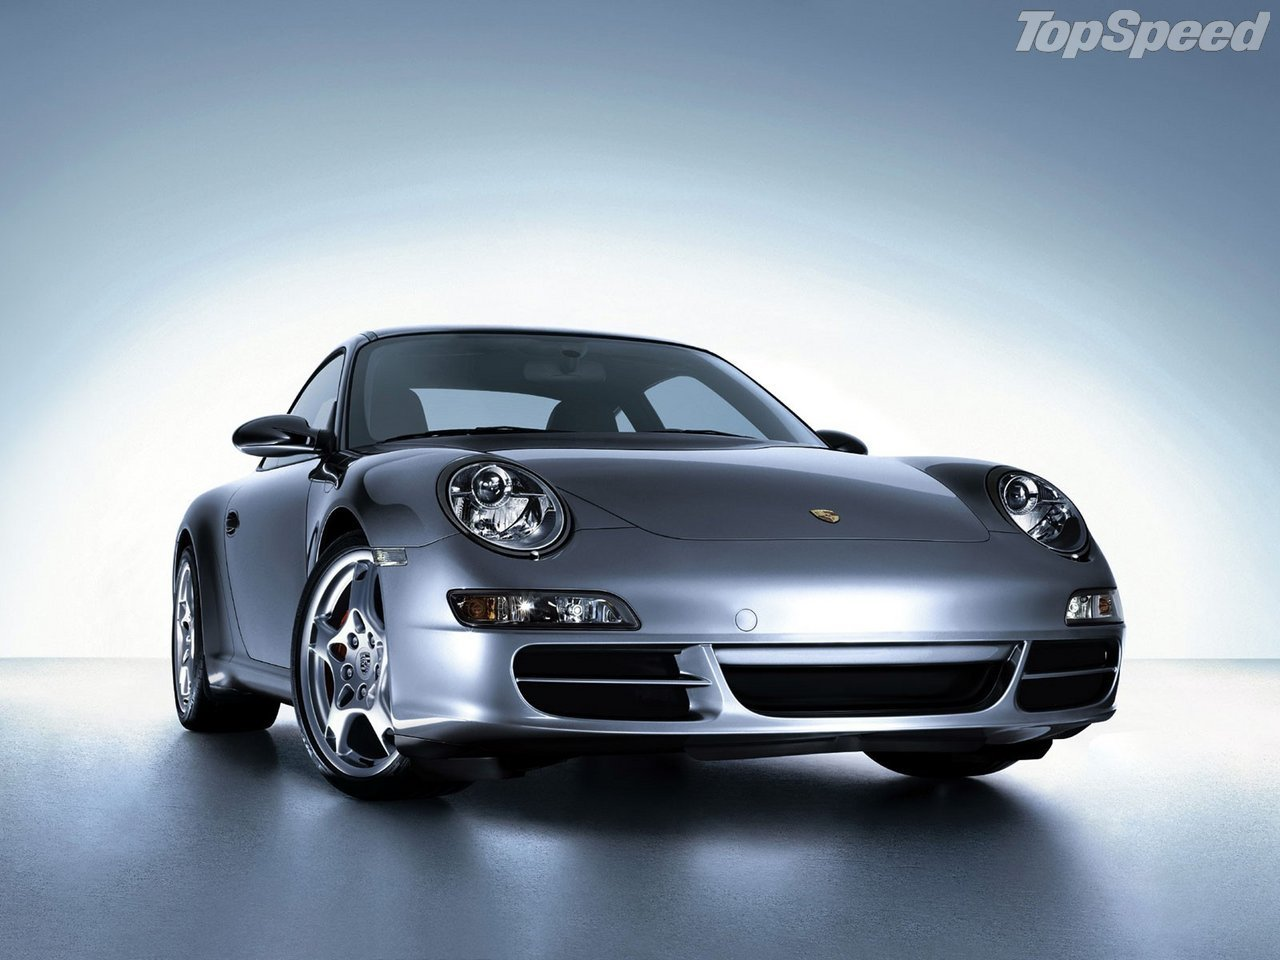 When you want to buy a car you need to know what to buy the best car at a good price is something we all looking for